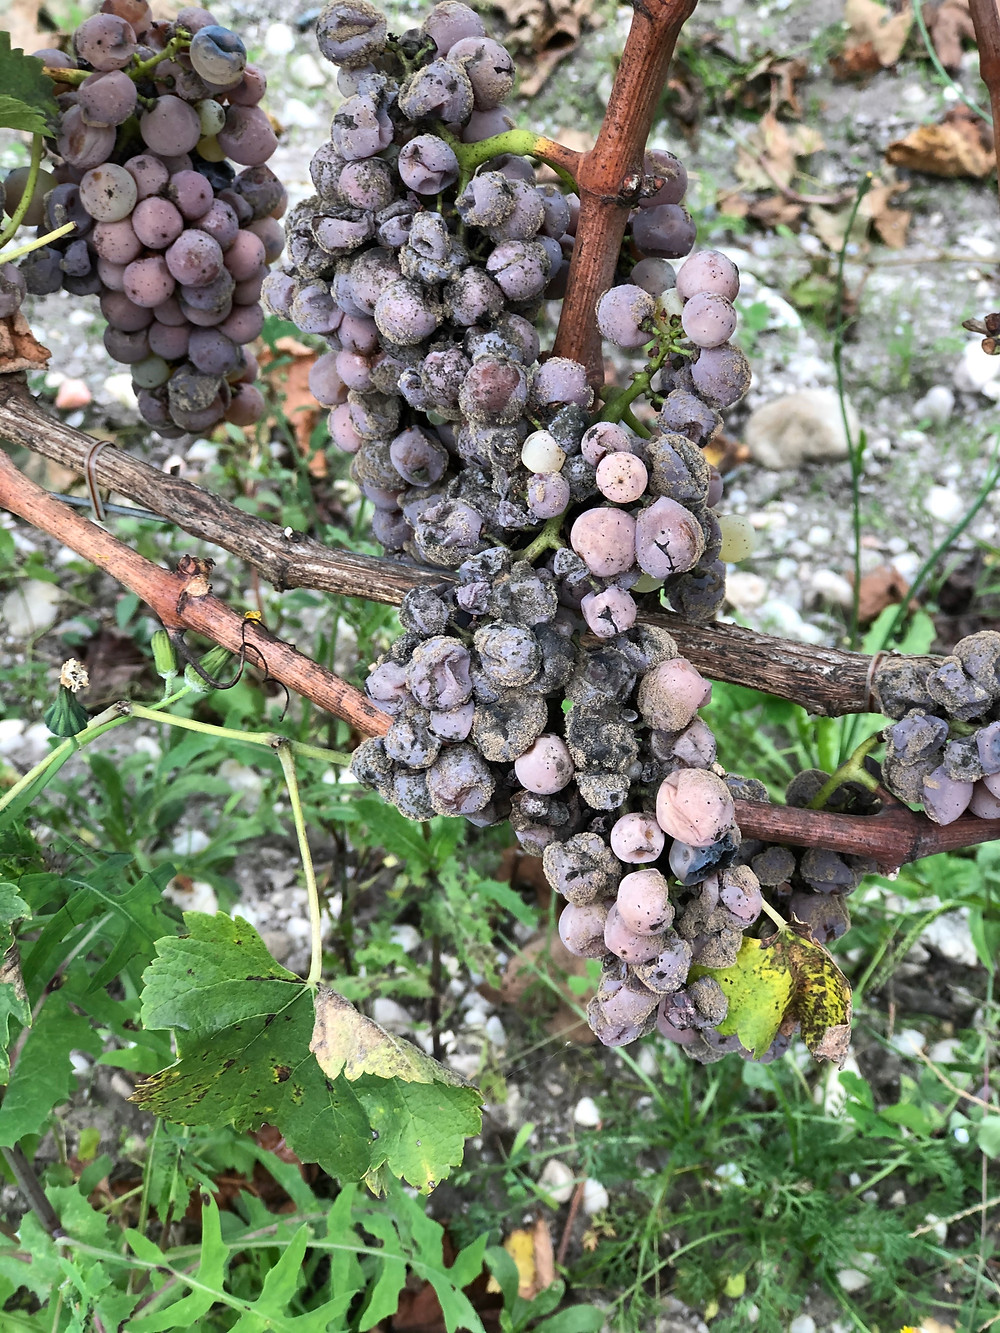 Botrytis cinerea or noble rot affected Semillon grapes in the vineyard in Sauternes before harvest